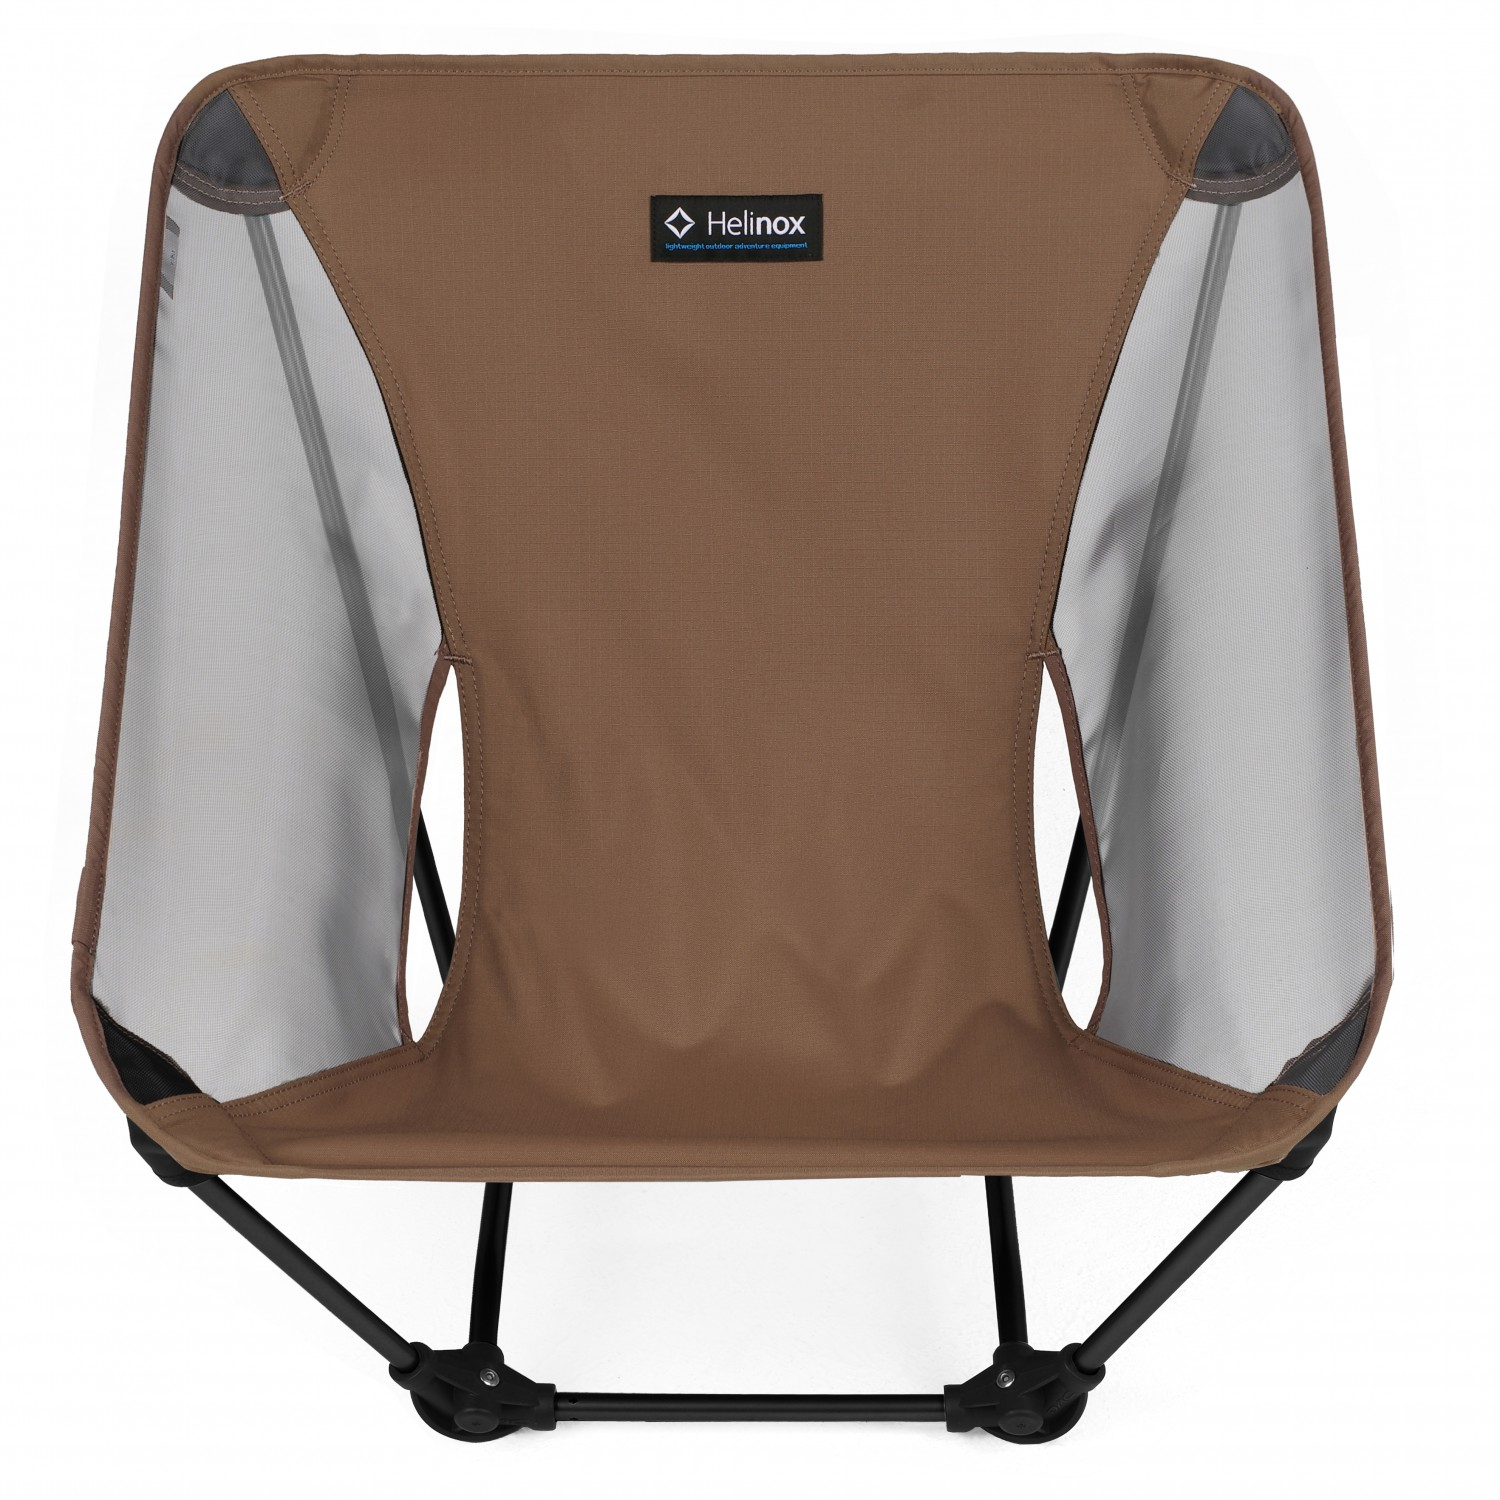 Helinox Ground Chair  Camping Chair  Free UK Delivery